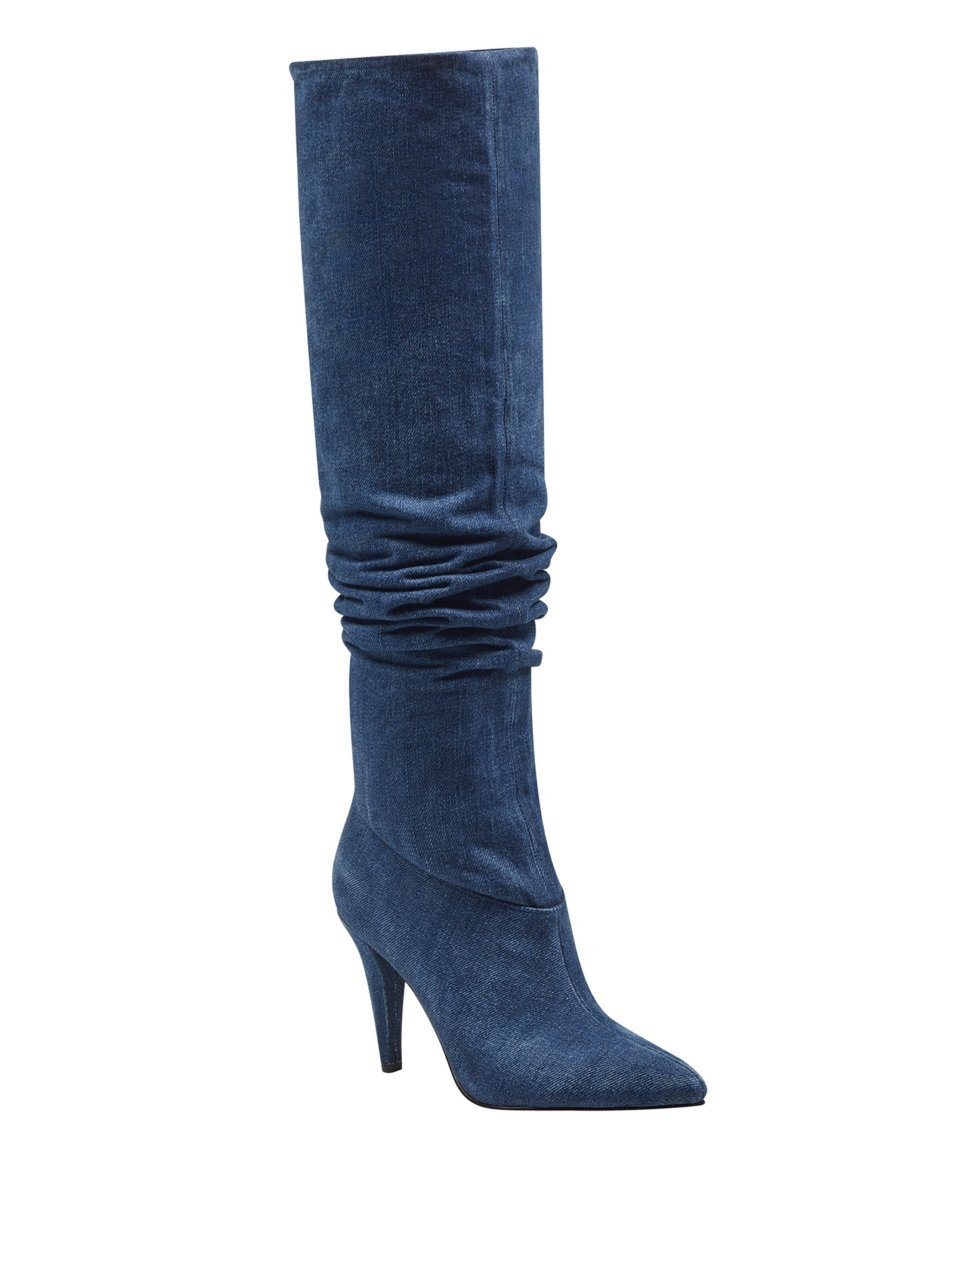 GUESS Women's Nidia Denim Slouchy Boots